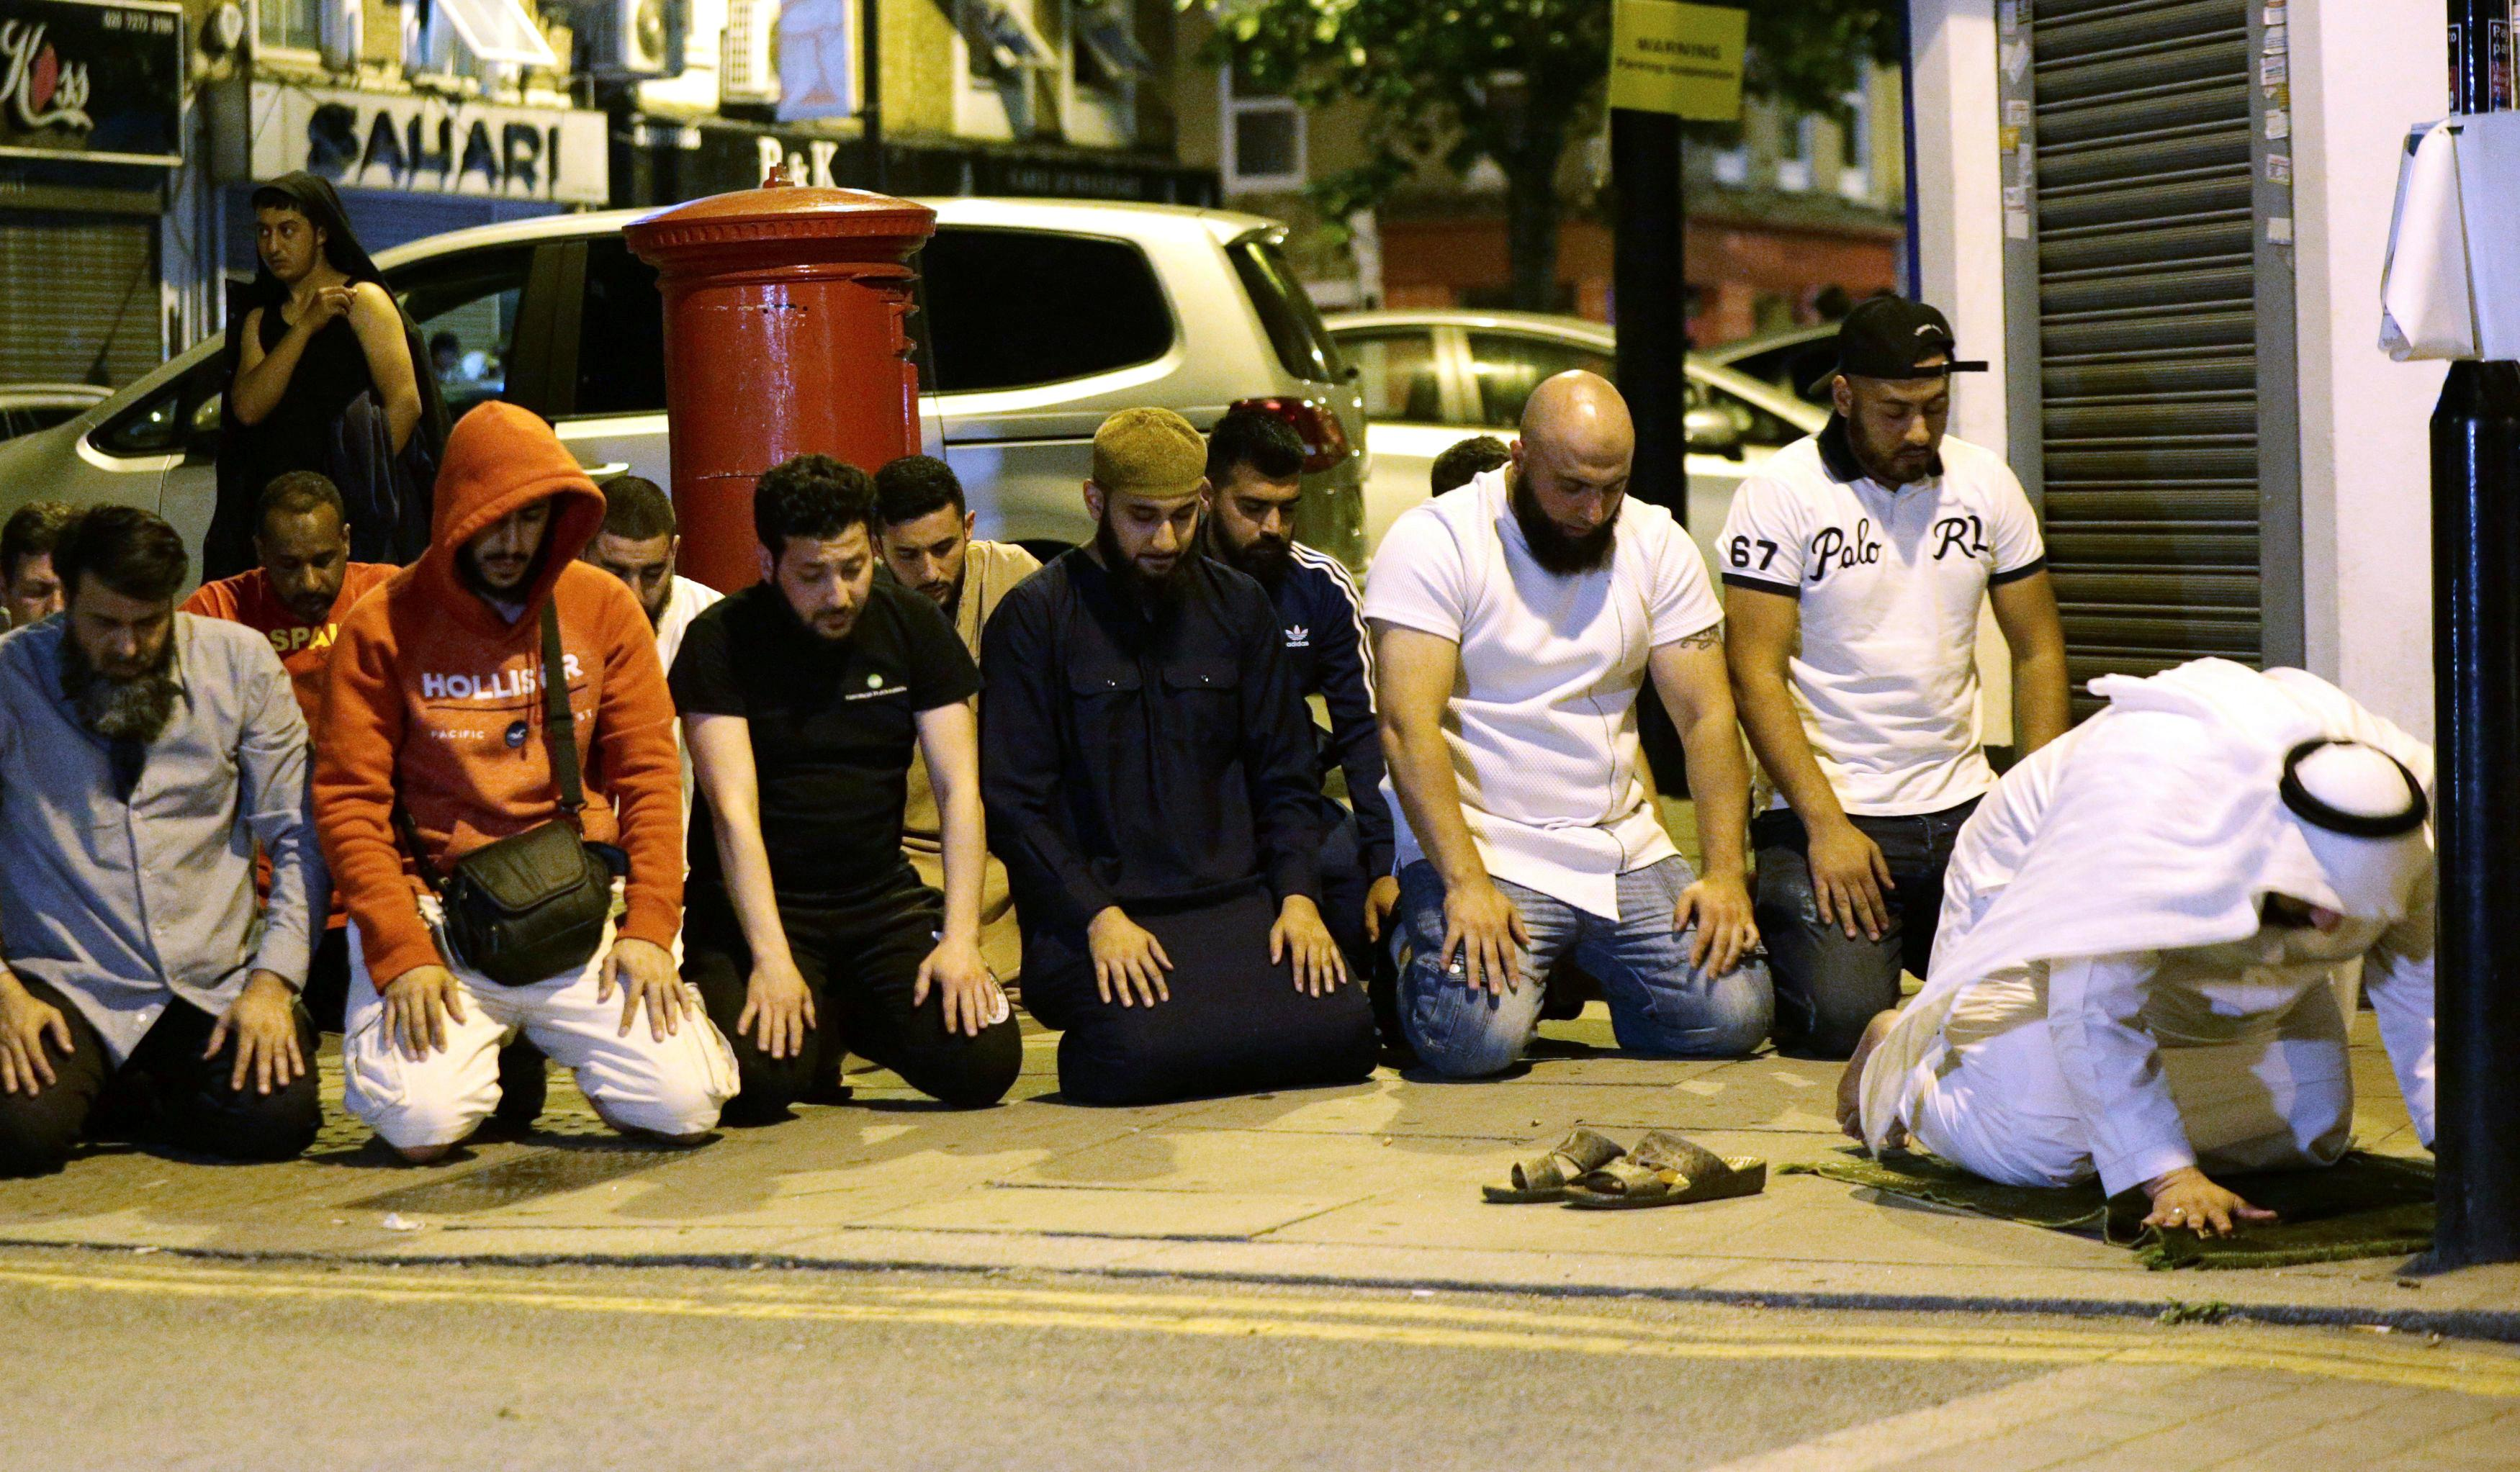 Local people observe prayers at Finsbury Park where a vehicle struck pedestrians in London Monday, June 19, 2017. Police say a vehicle struck pedestrians near a mosque in north London, leaving several casualties and one person was arrested. (Yui Mok/PA via AP)